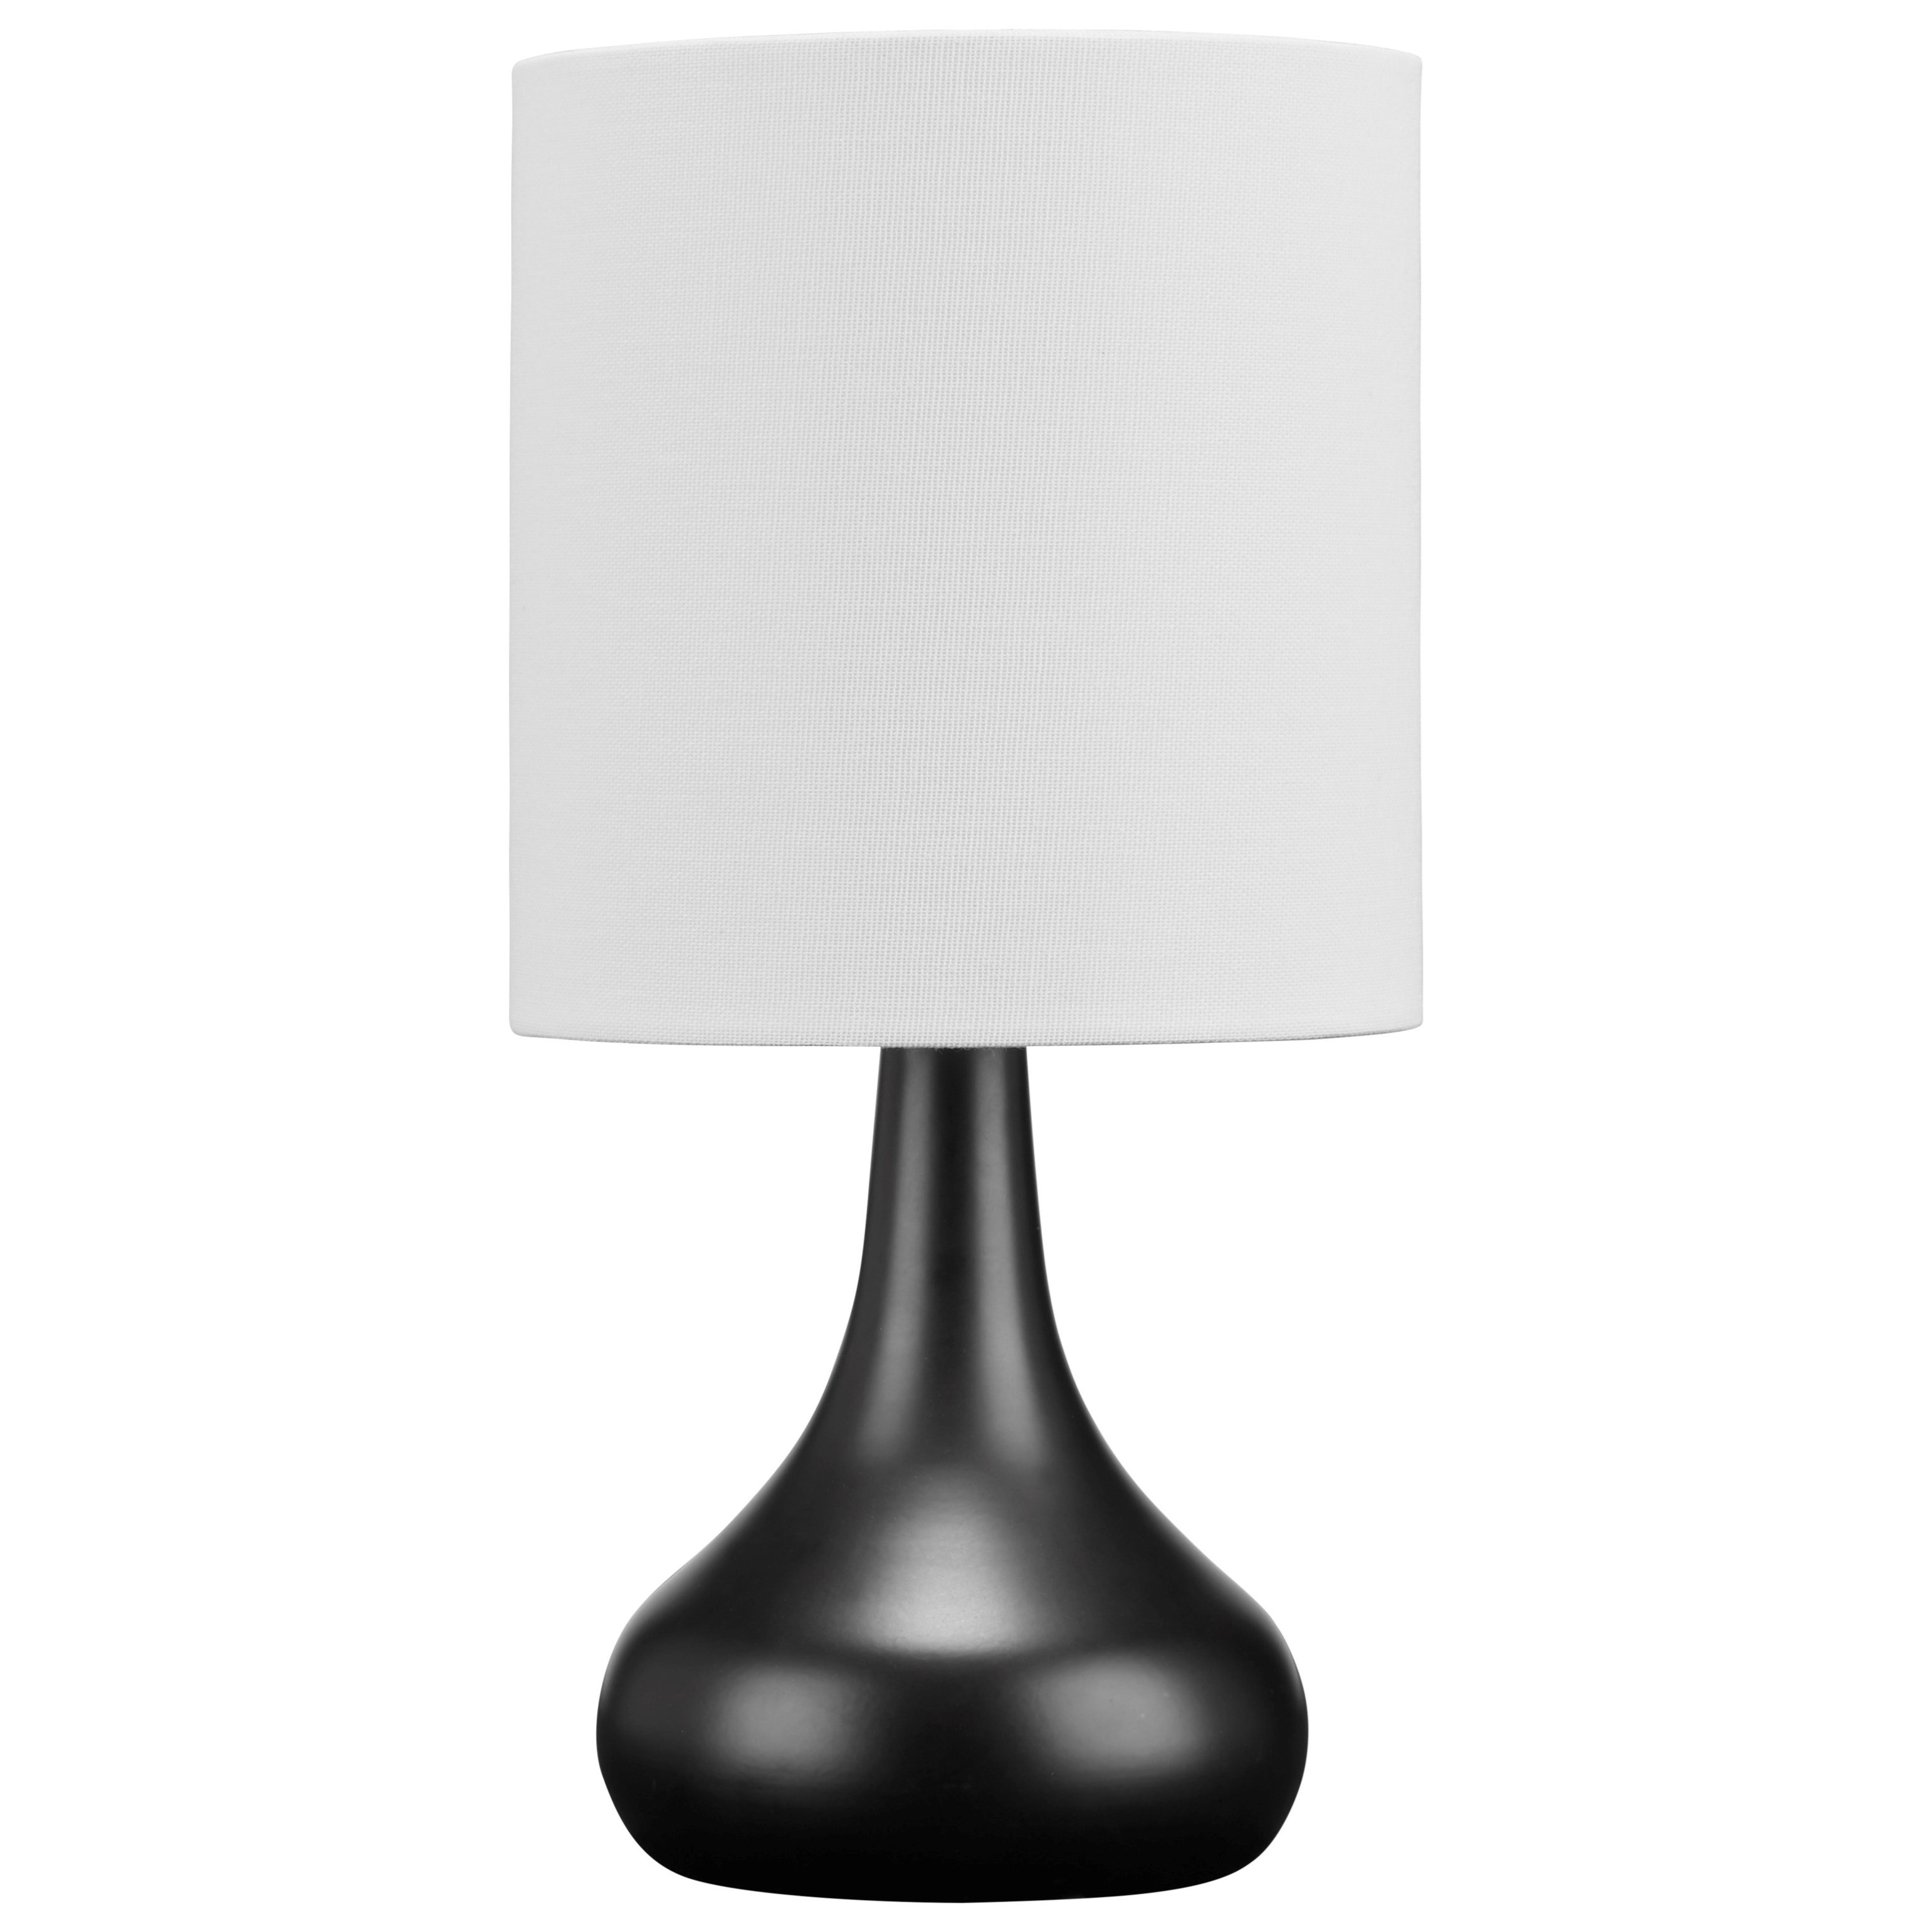 Lamps - Contemporary Camdale Black Metal Table Lamp by Ashley (Signature Design) at Johnny Janosik